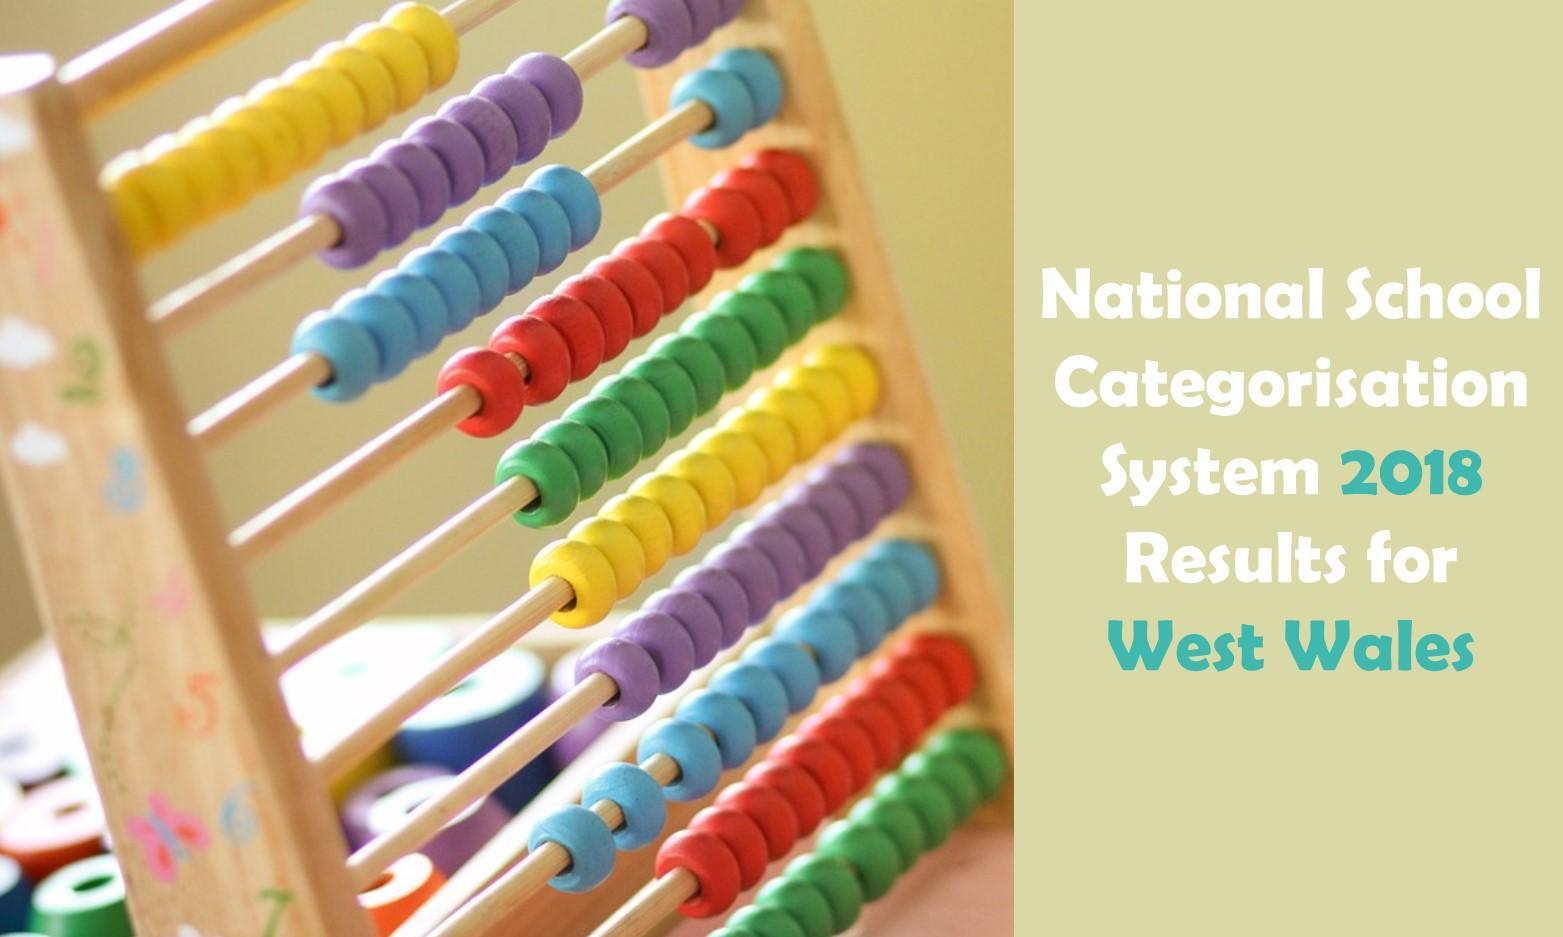 The National School Categorisation System 2018 Results for West Wales